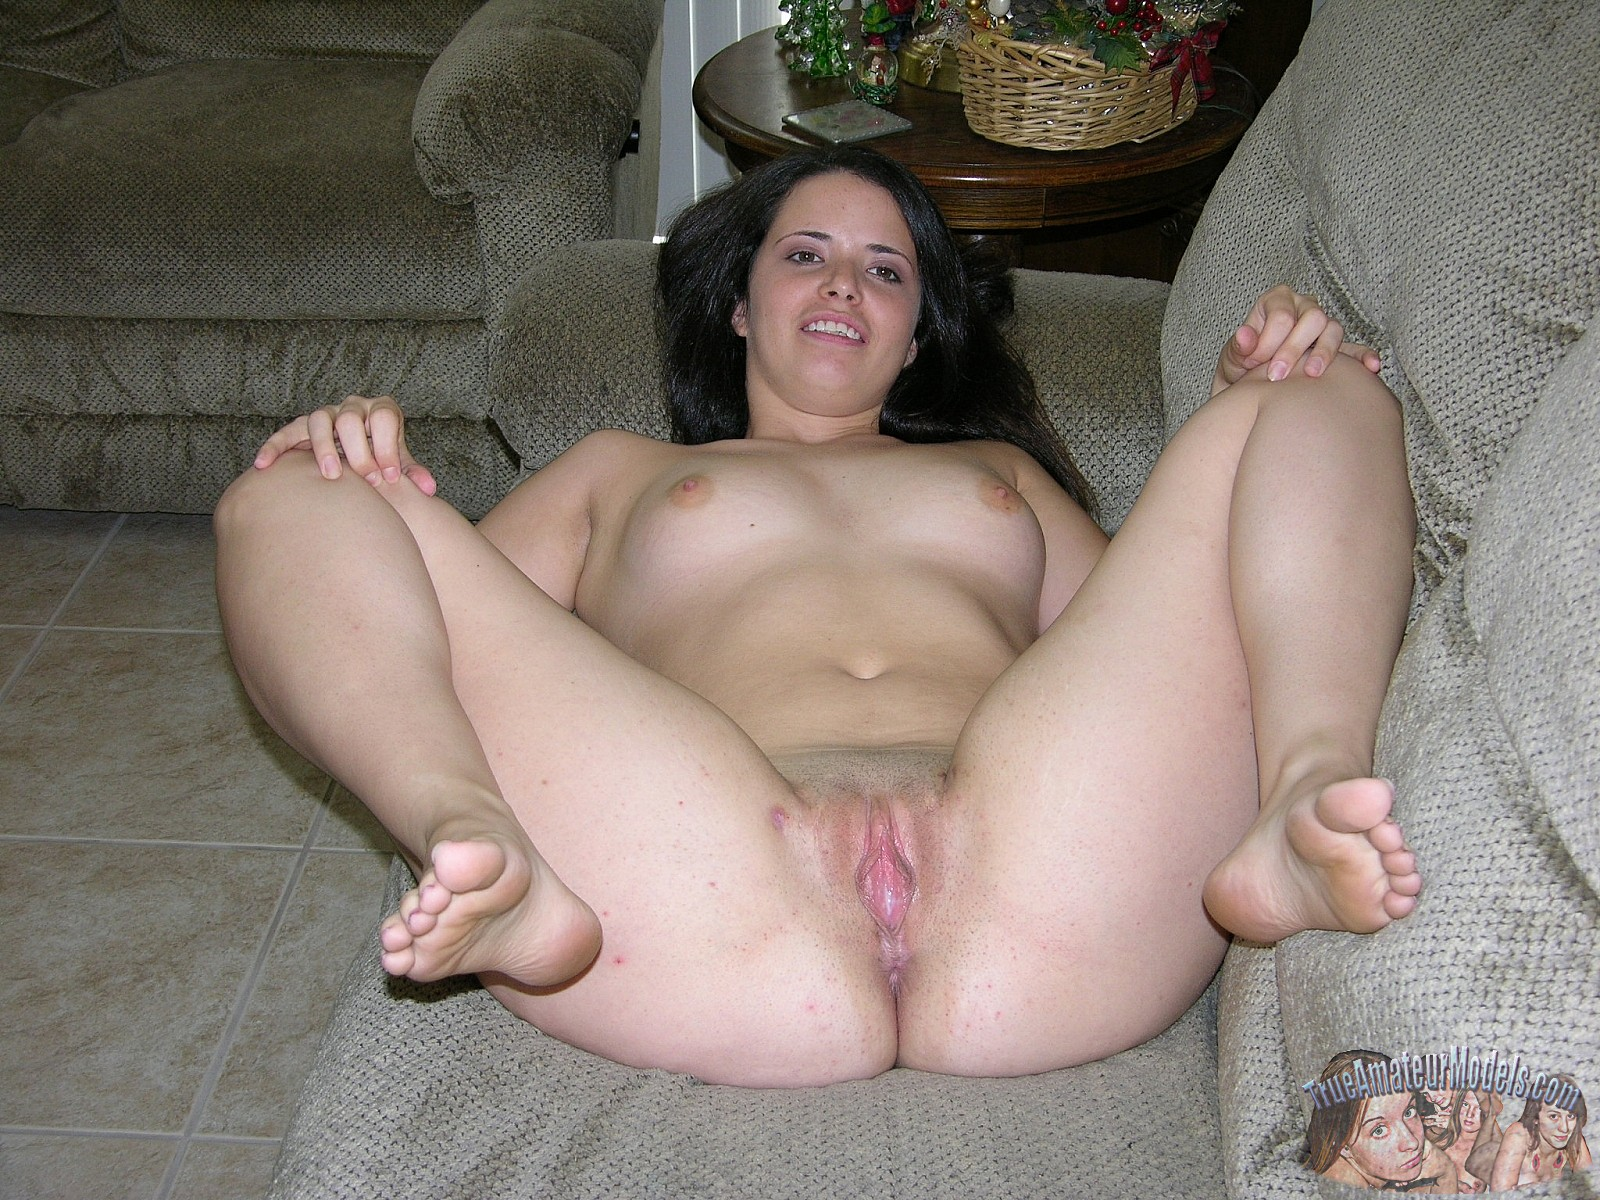 Trueamatuermodels feet pussy photos consider, that